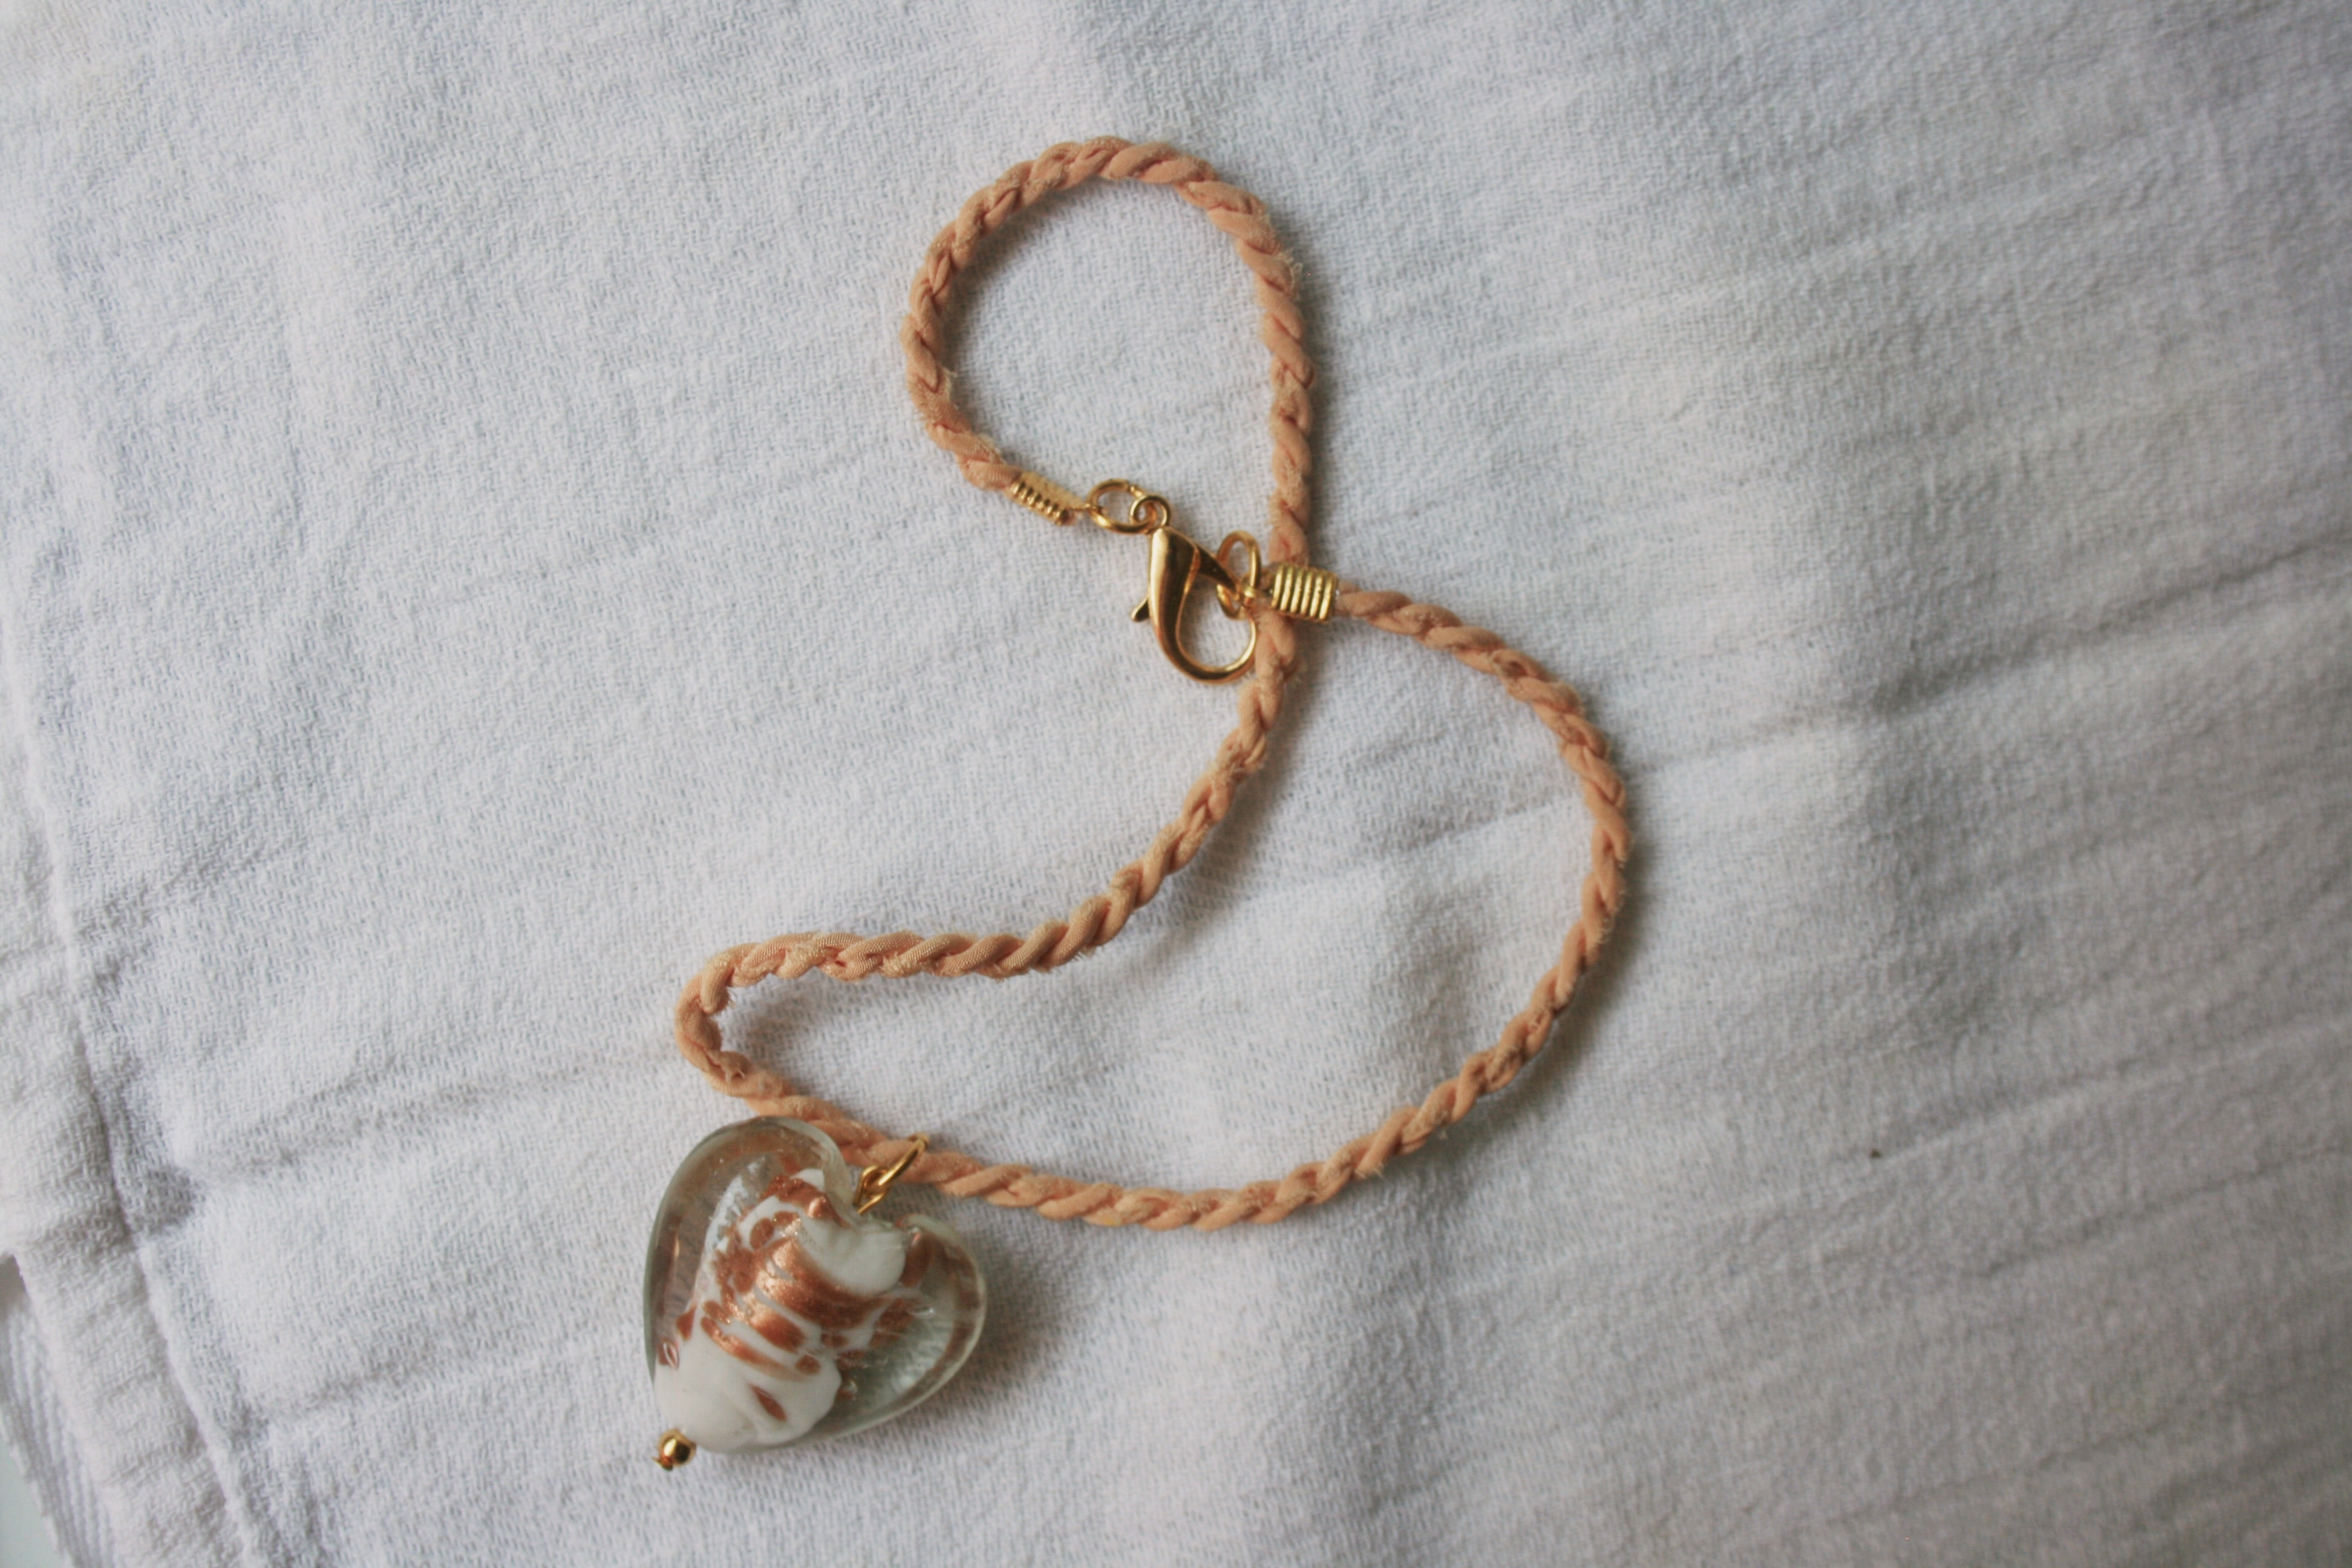 Necklace handmade in a powder pink silk rope and a heart shaped Murano glass pendant bead